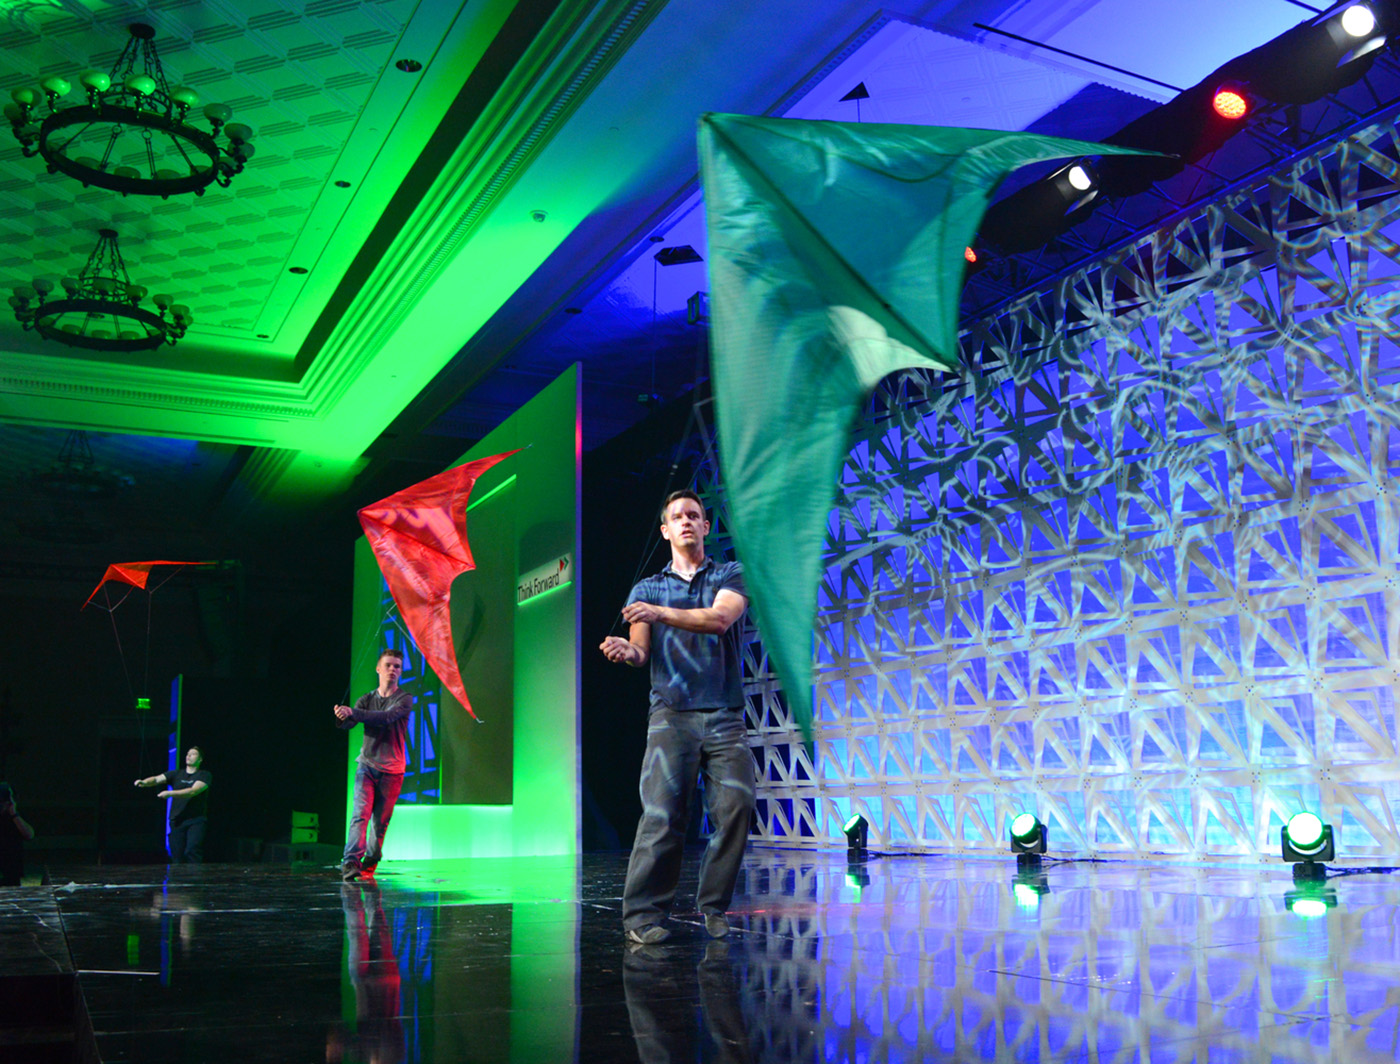 razor superwall stands tall as kites soar on stage